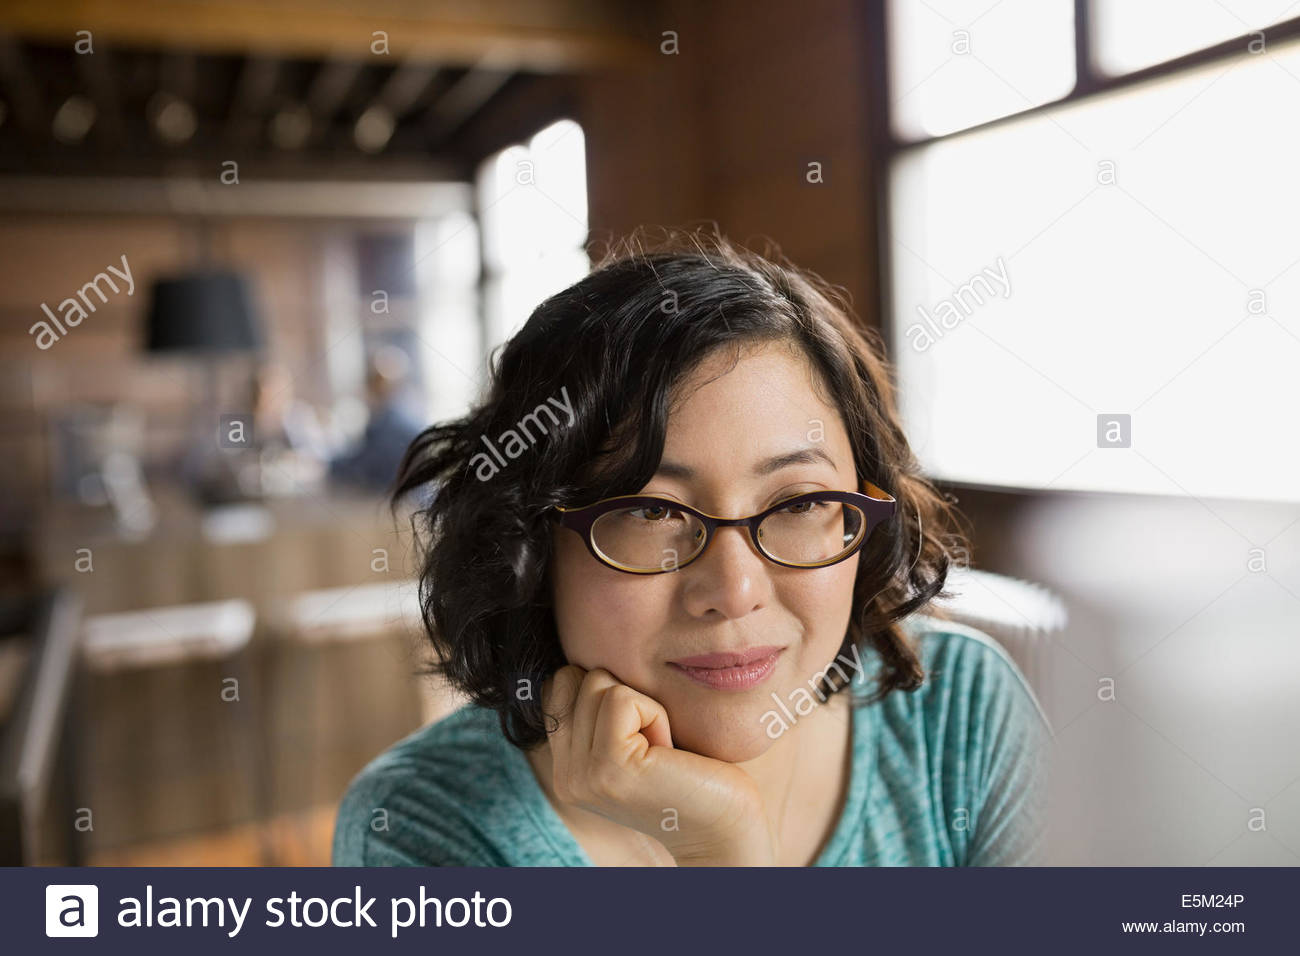 Close up of businesswoman at computer in office Photo Stock